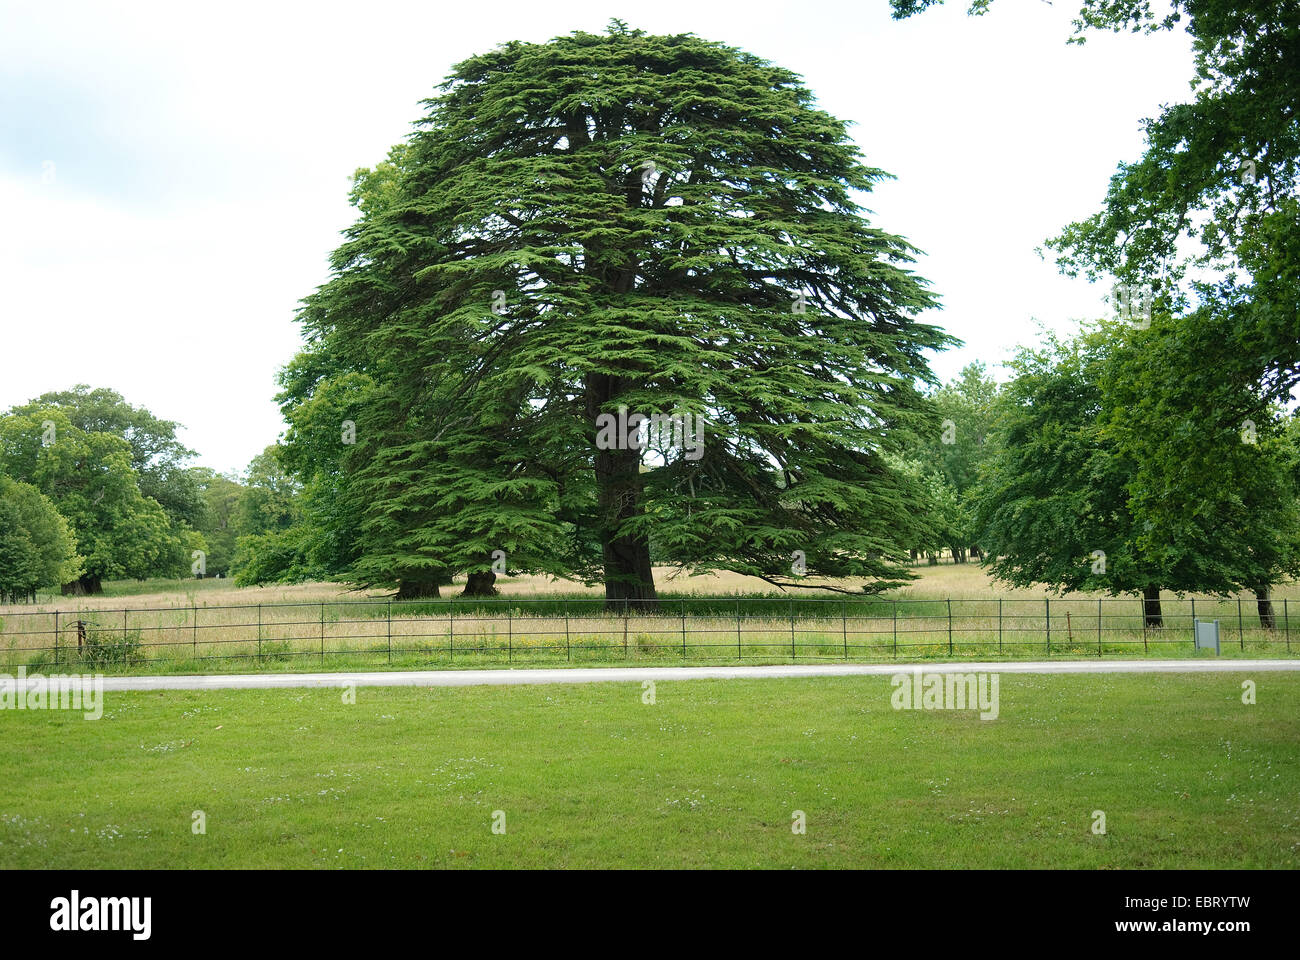 cedar of Lebanon (Cedrus libani), single tree - Stock Image